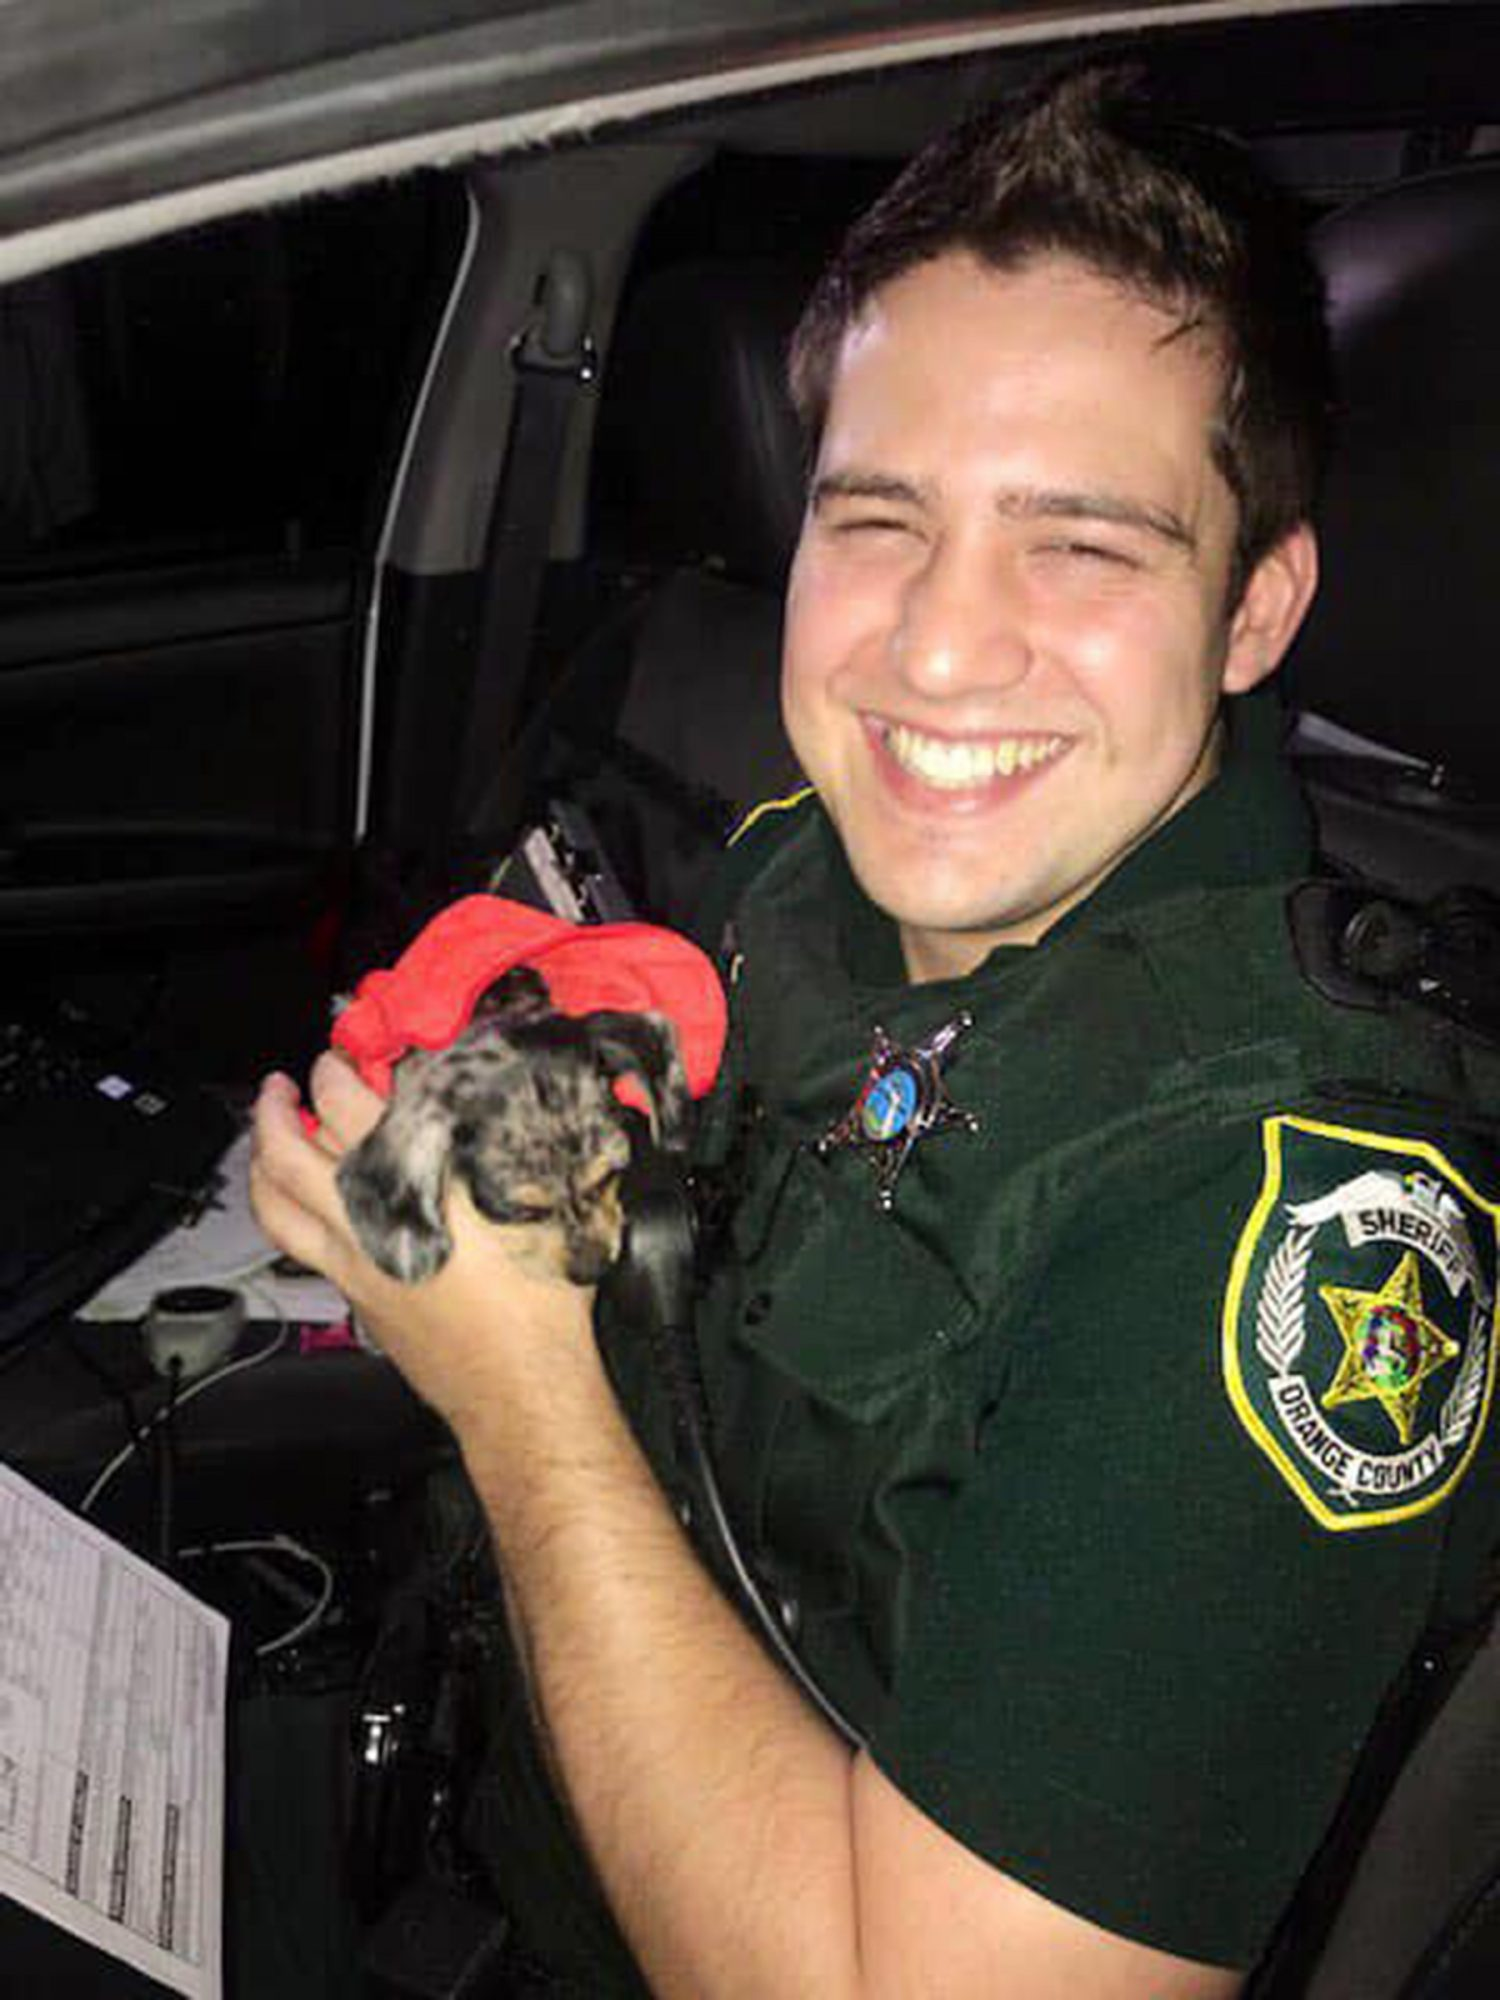 Meet Dorian! While working the Hurricane, deputies responded to a suspicious vehicle, which was unoccupied and partially flooded. Deputy Josh Tolliver checked it out and found this puppy. Deputies named her Dorian. She was wet and scared but otherwise fine.